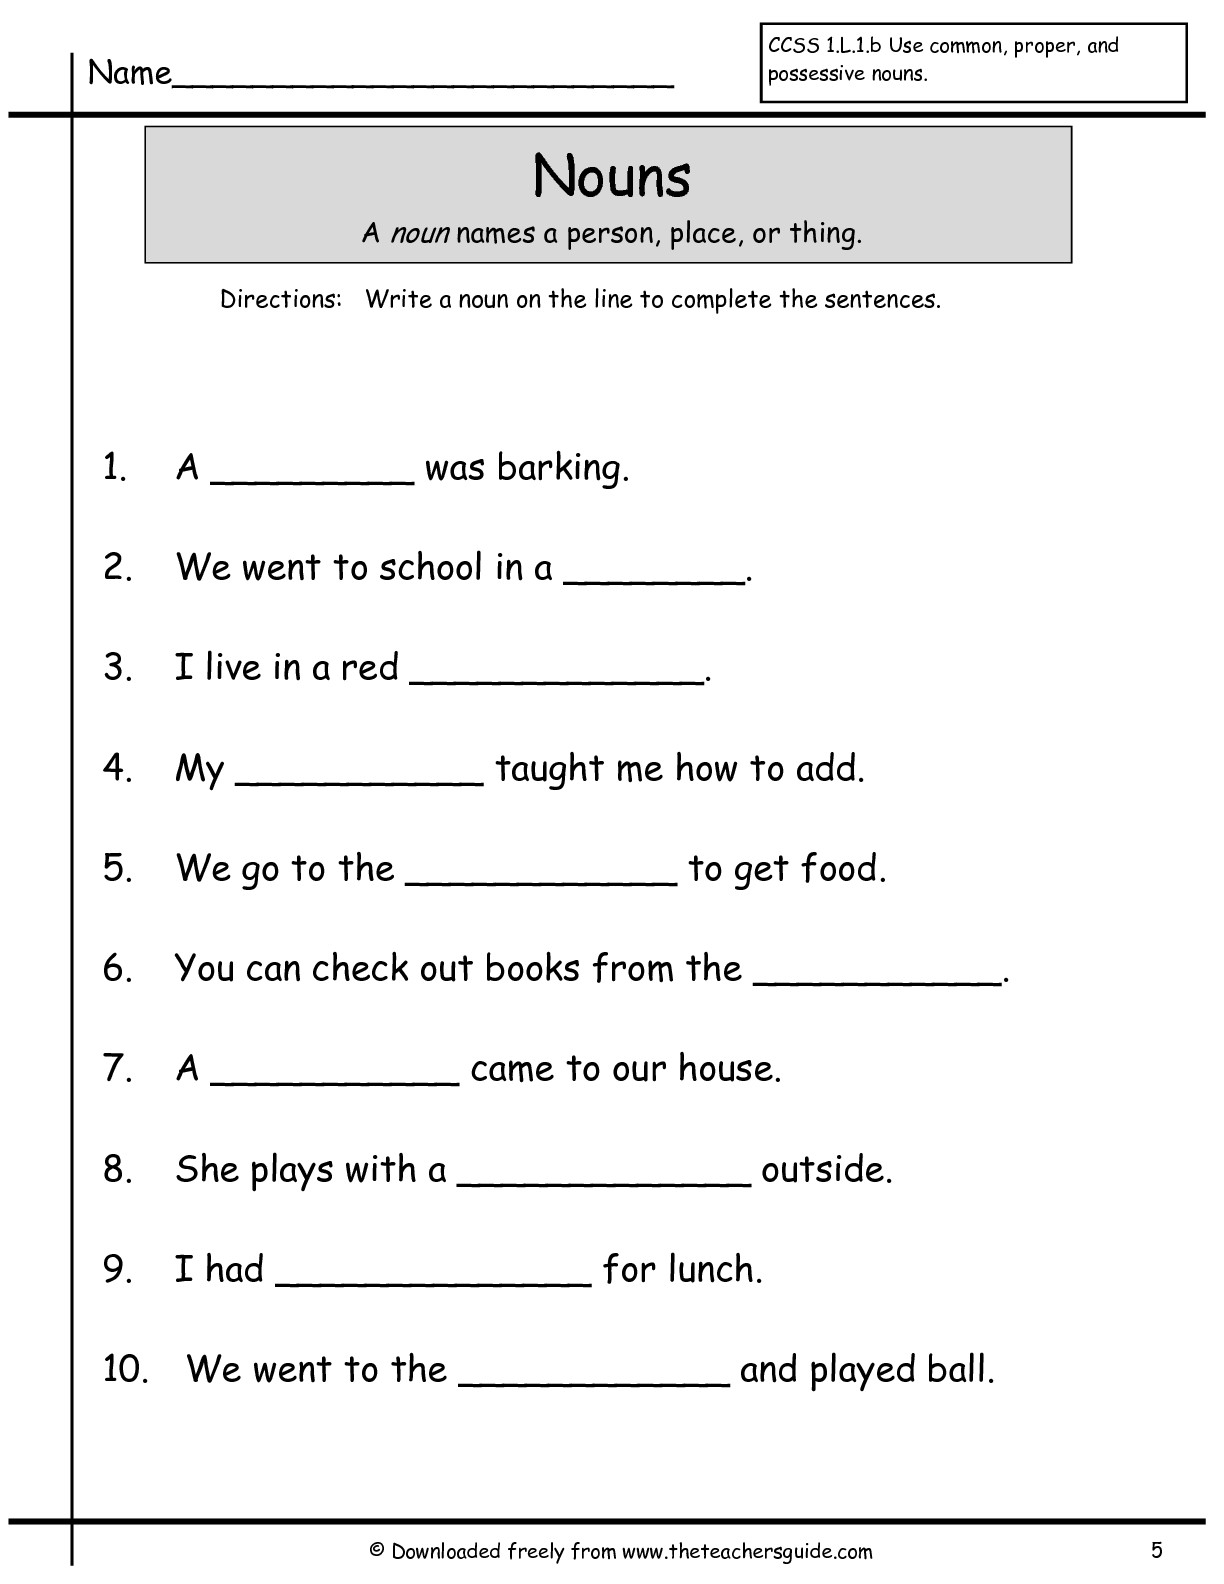 19 Best Images Of Nouns Worksheet Grade 5